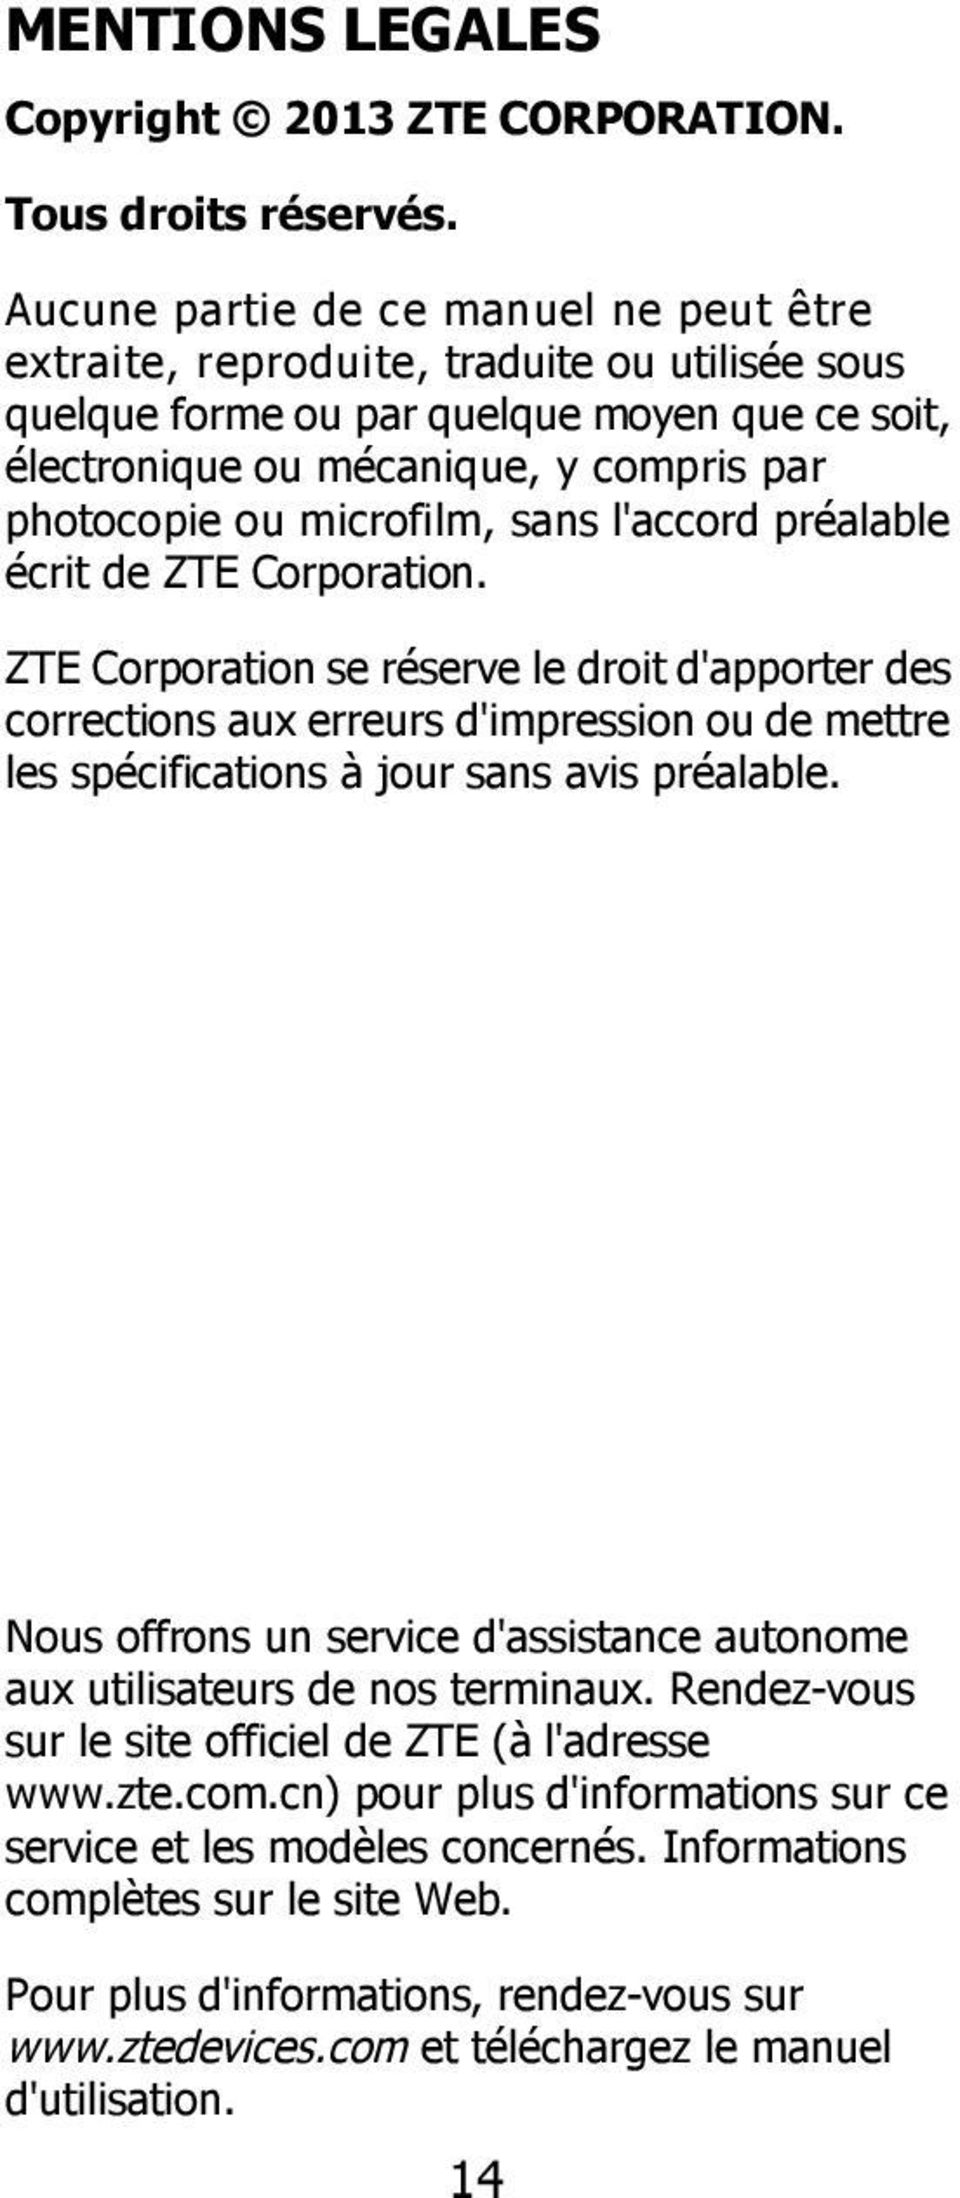 microfilm, sans l'accord préalable écrit de ZTE Corporation.